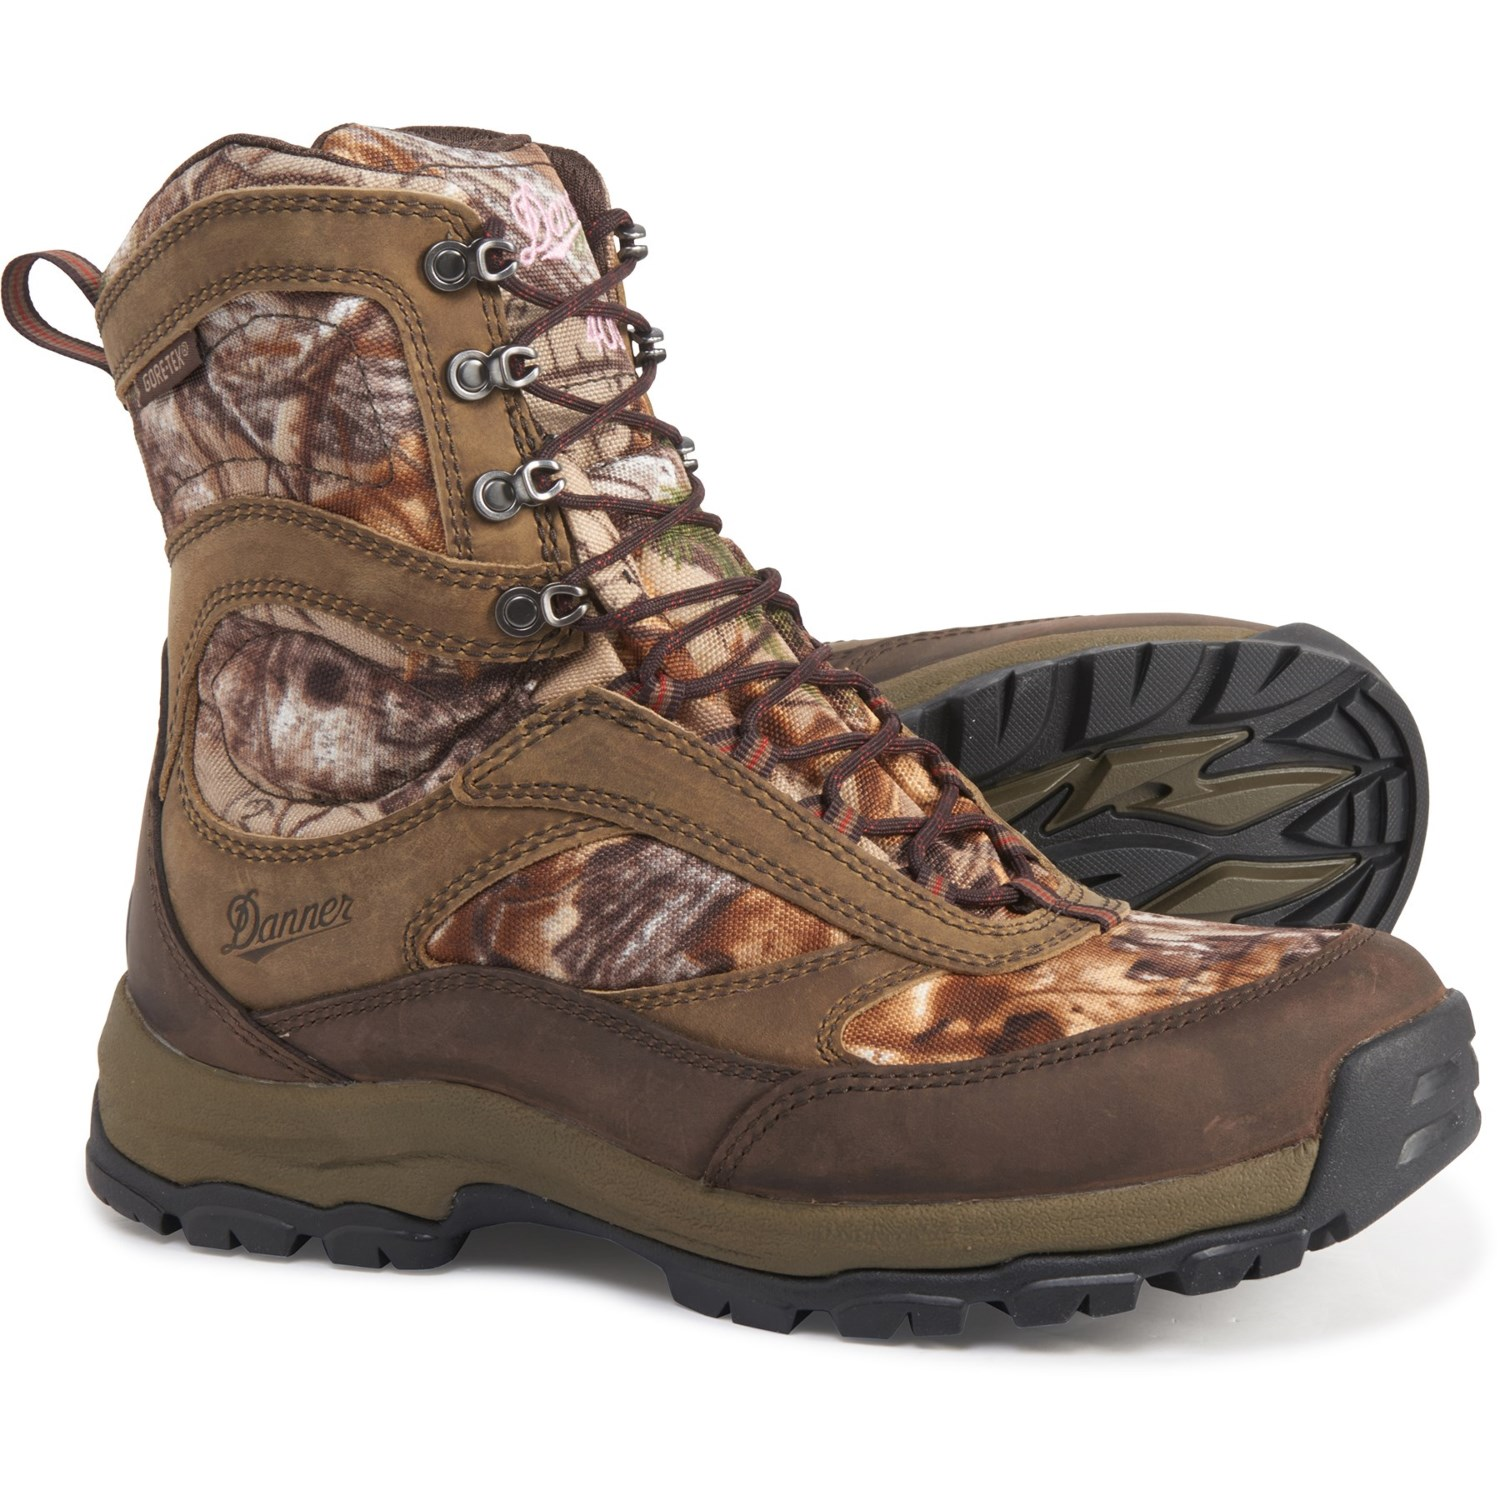 Ideal Ladies Serpent Evidence Boots Specified